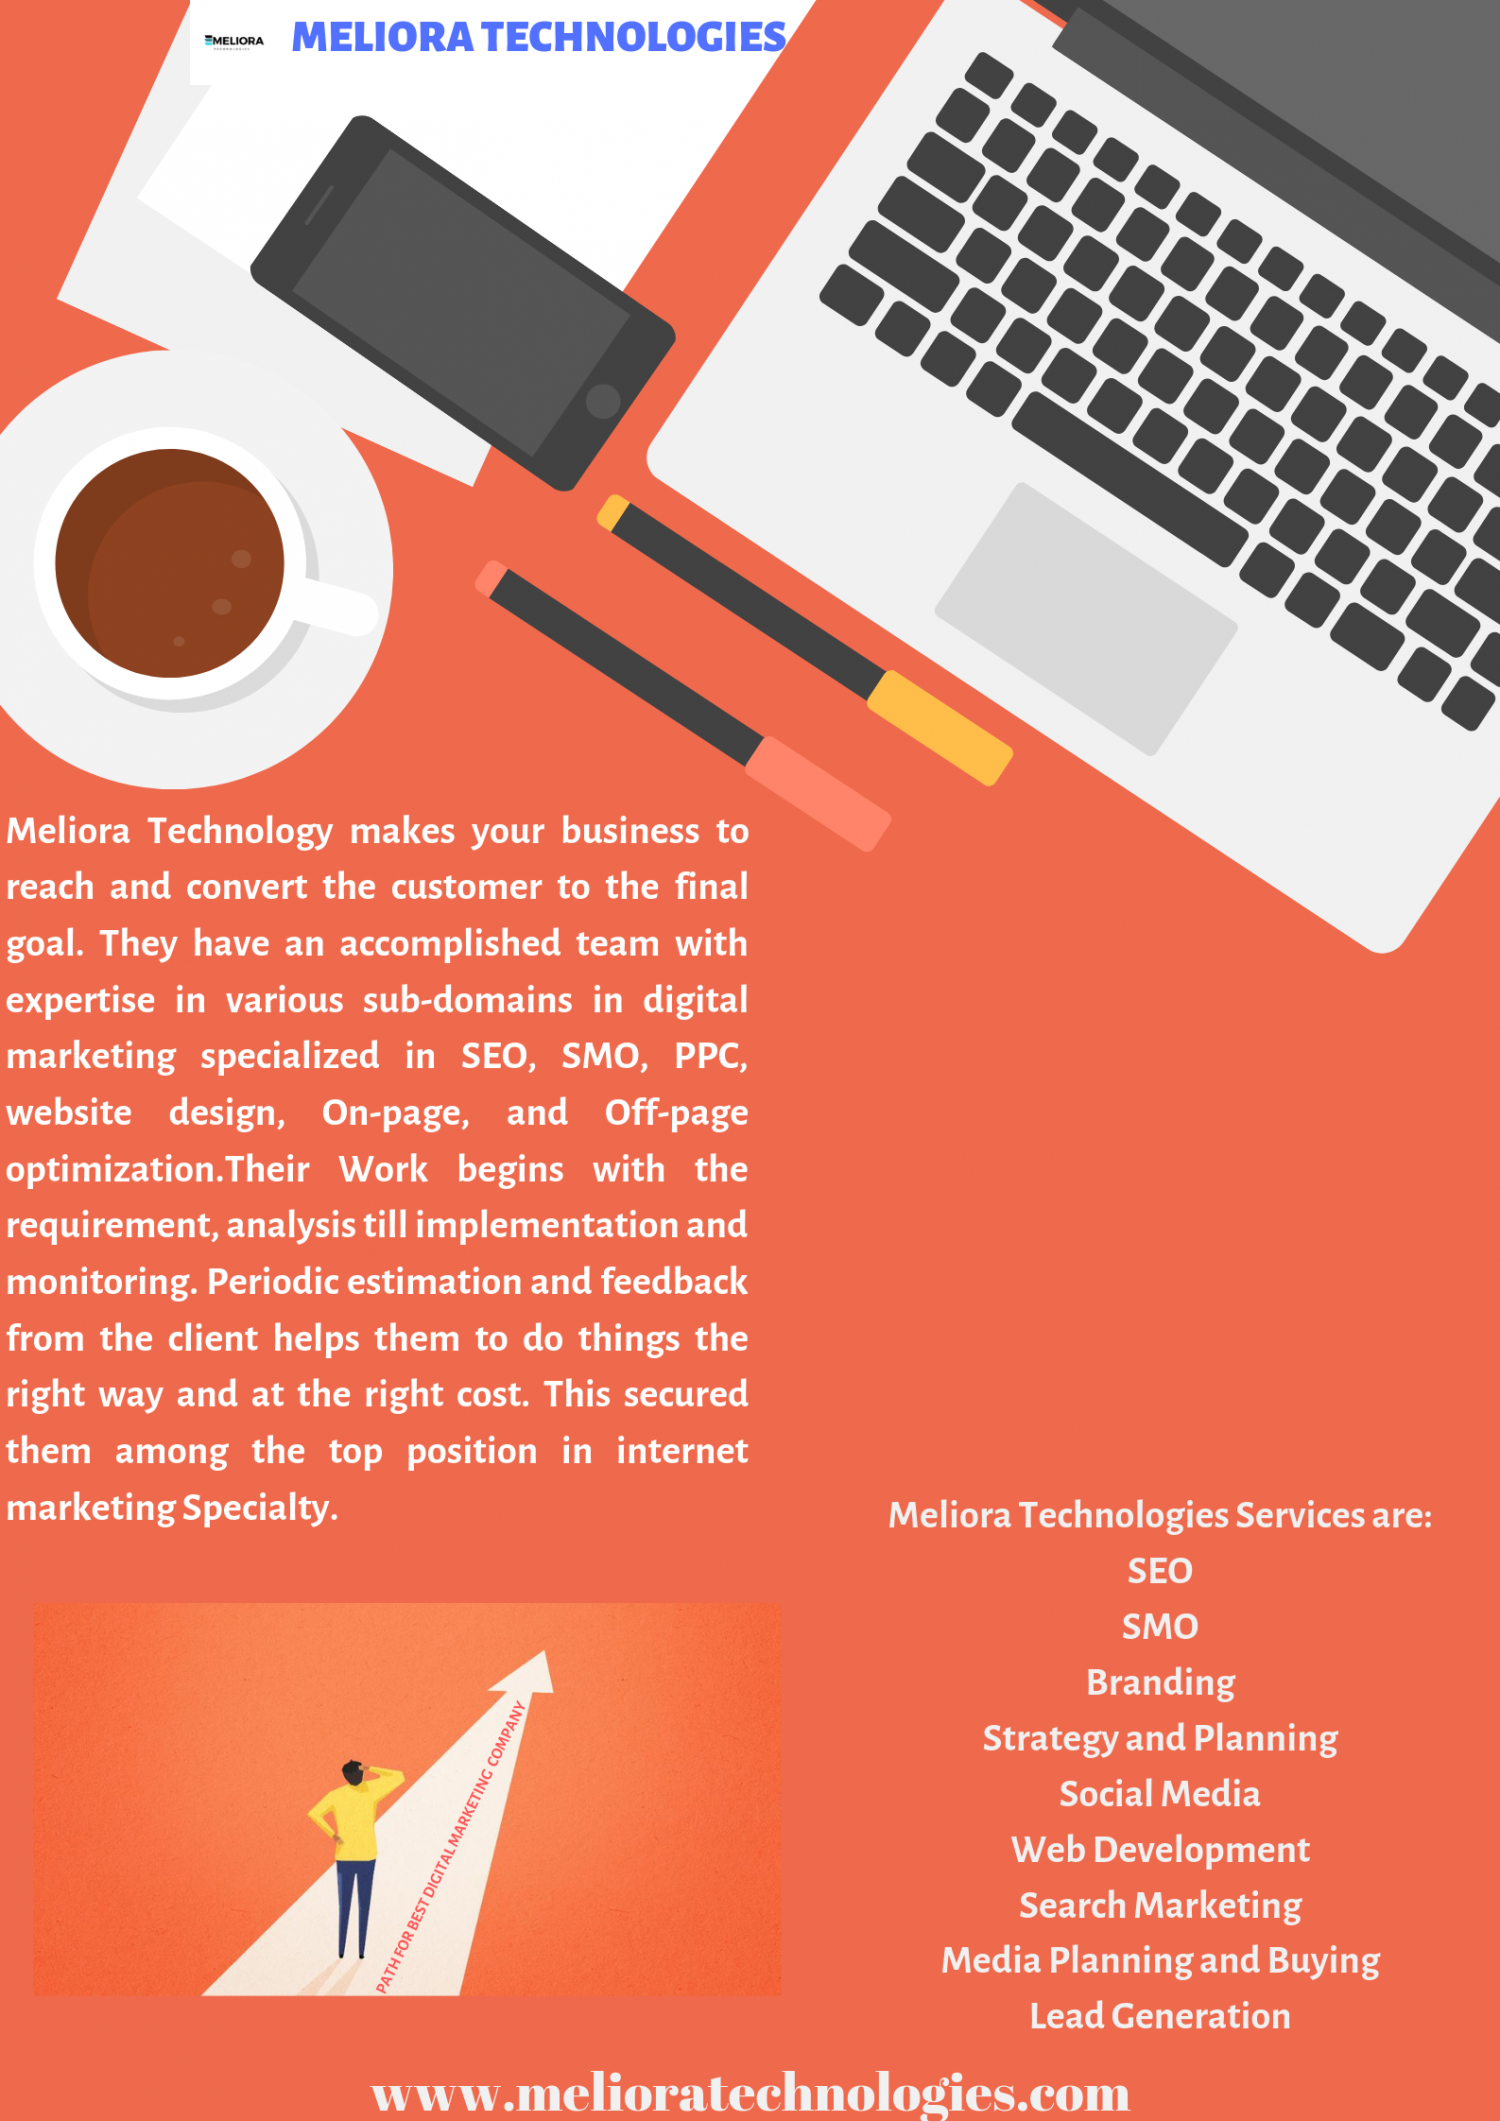 Meliora Technologies -  Digital Marketing Company in Pune Infographic